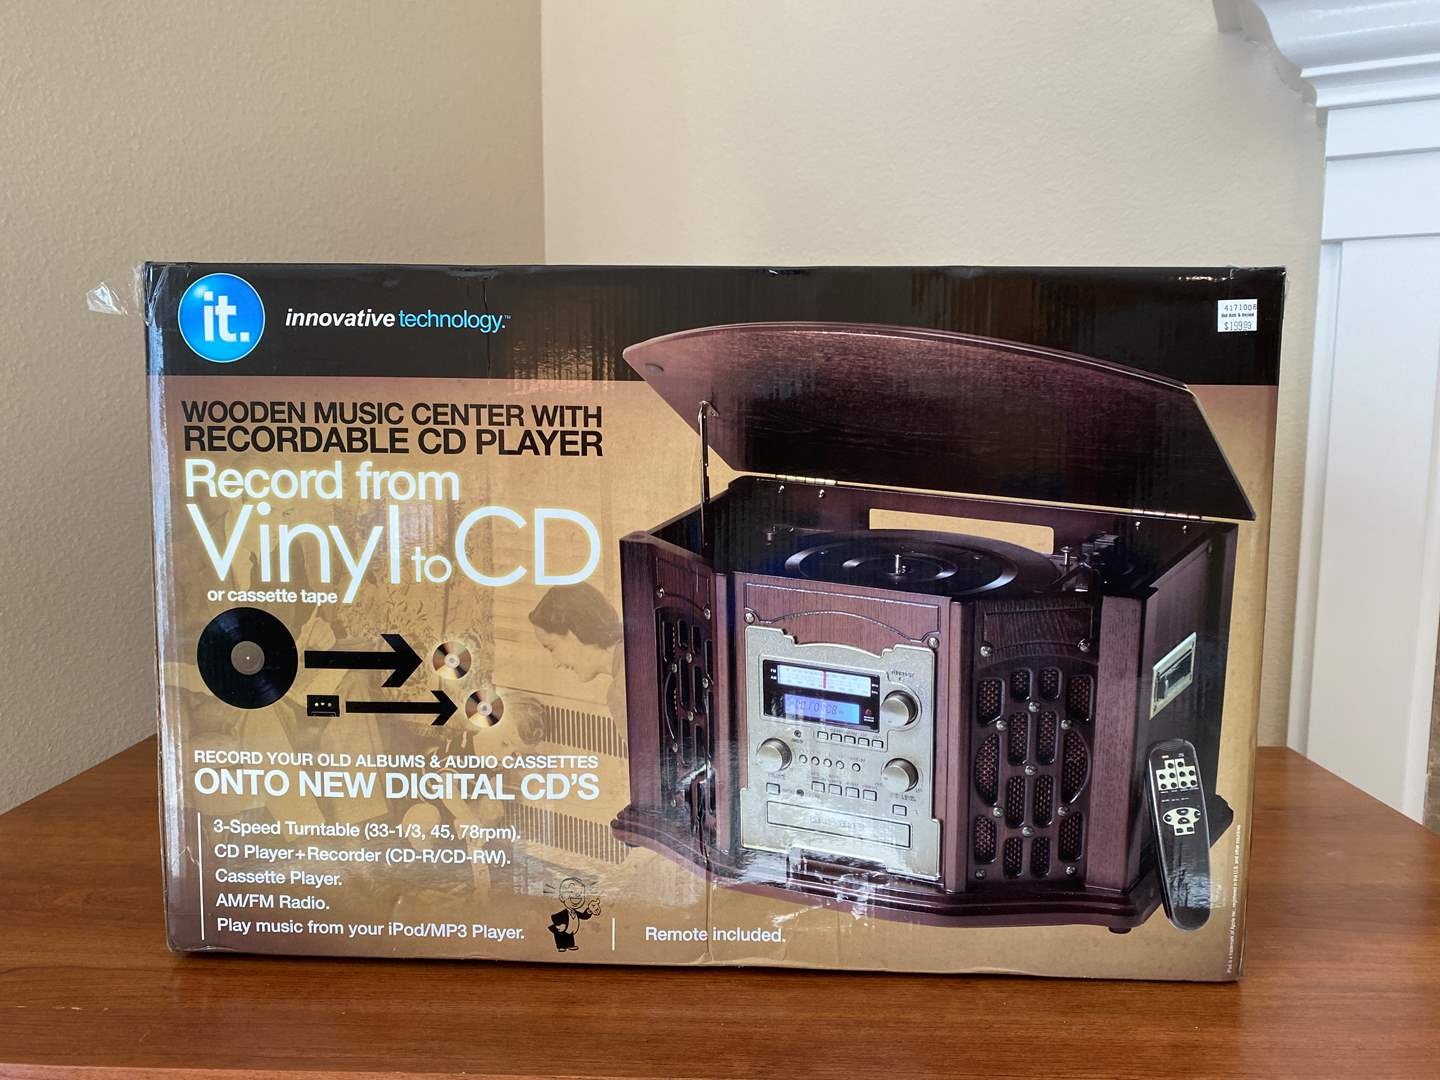 Lot # 25 - New in Box Innovative Technology Wooden Music Center w/Recordable CD Player, Turntable & Cassette Deck (main image)